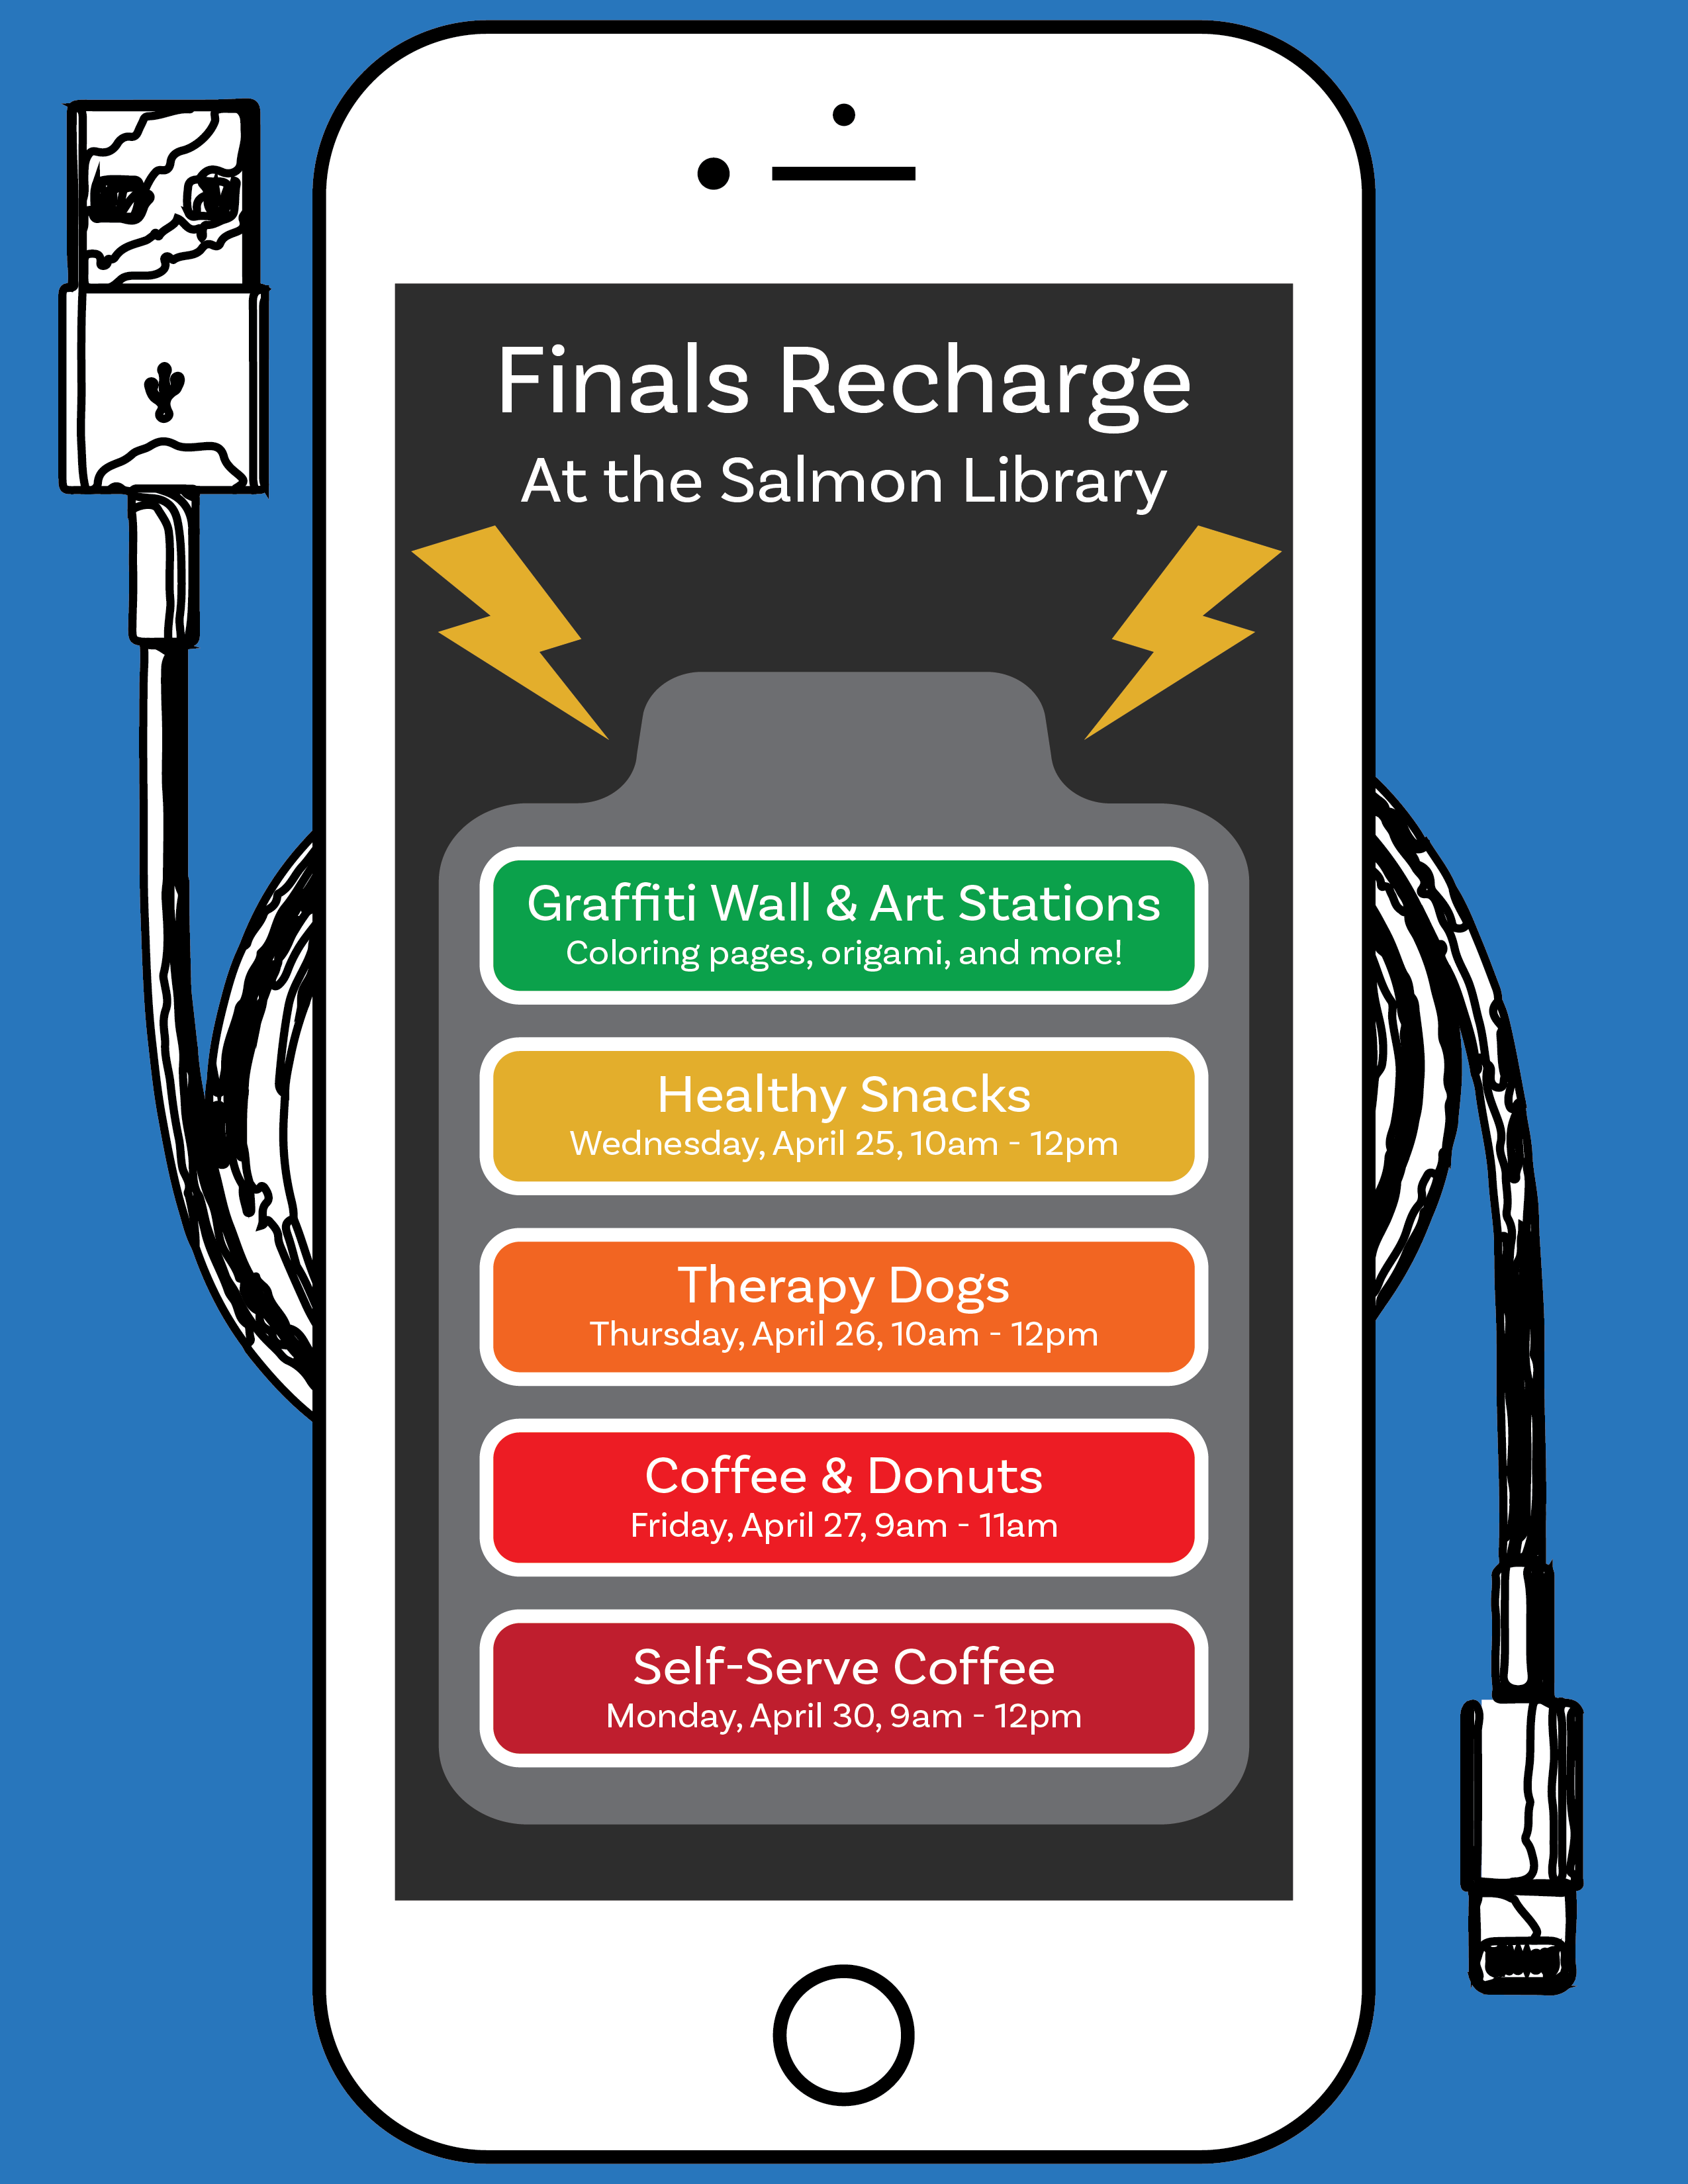 finals recharge spring 2018 events flyer for screen